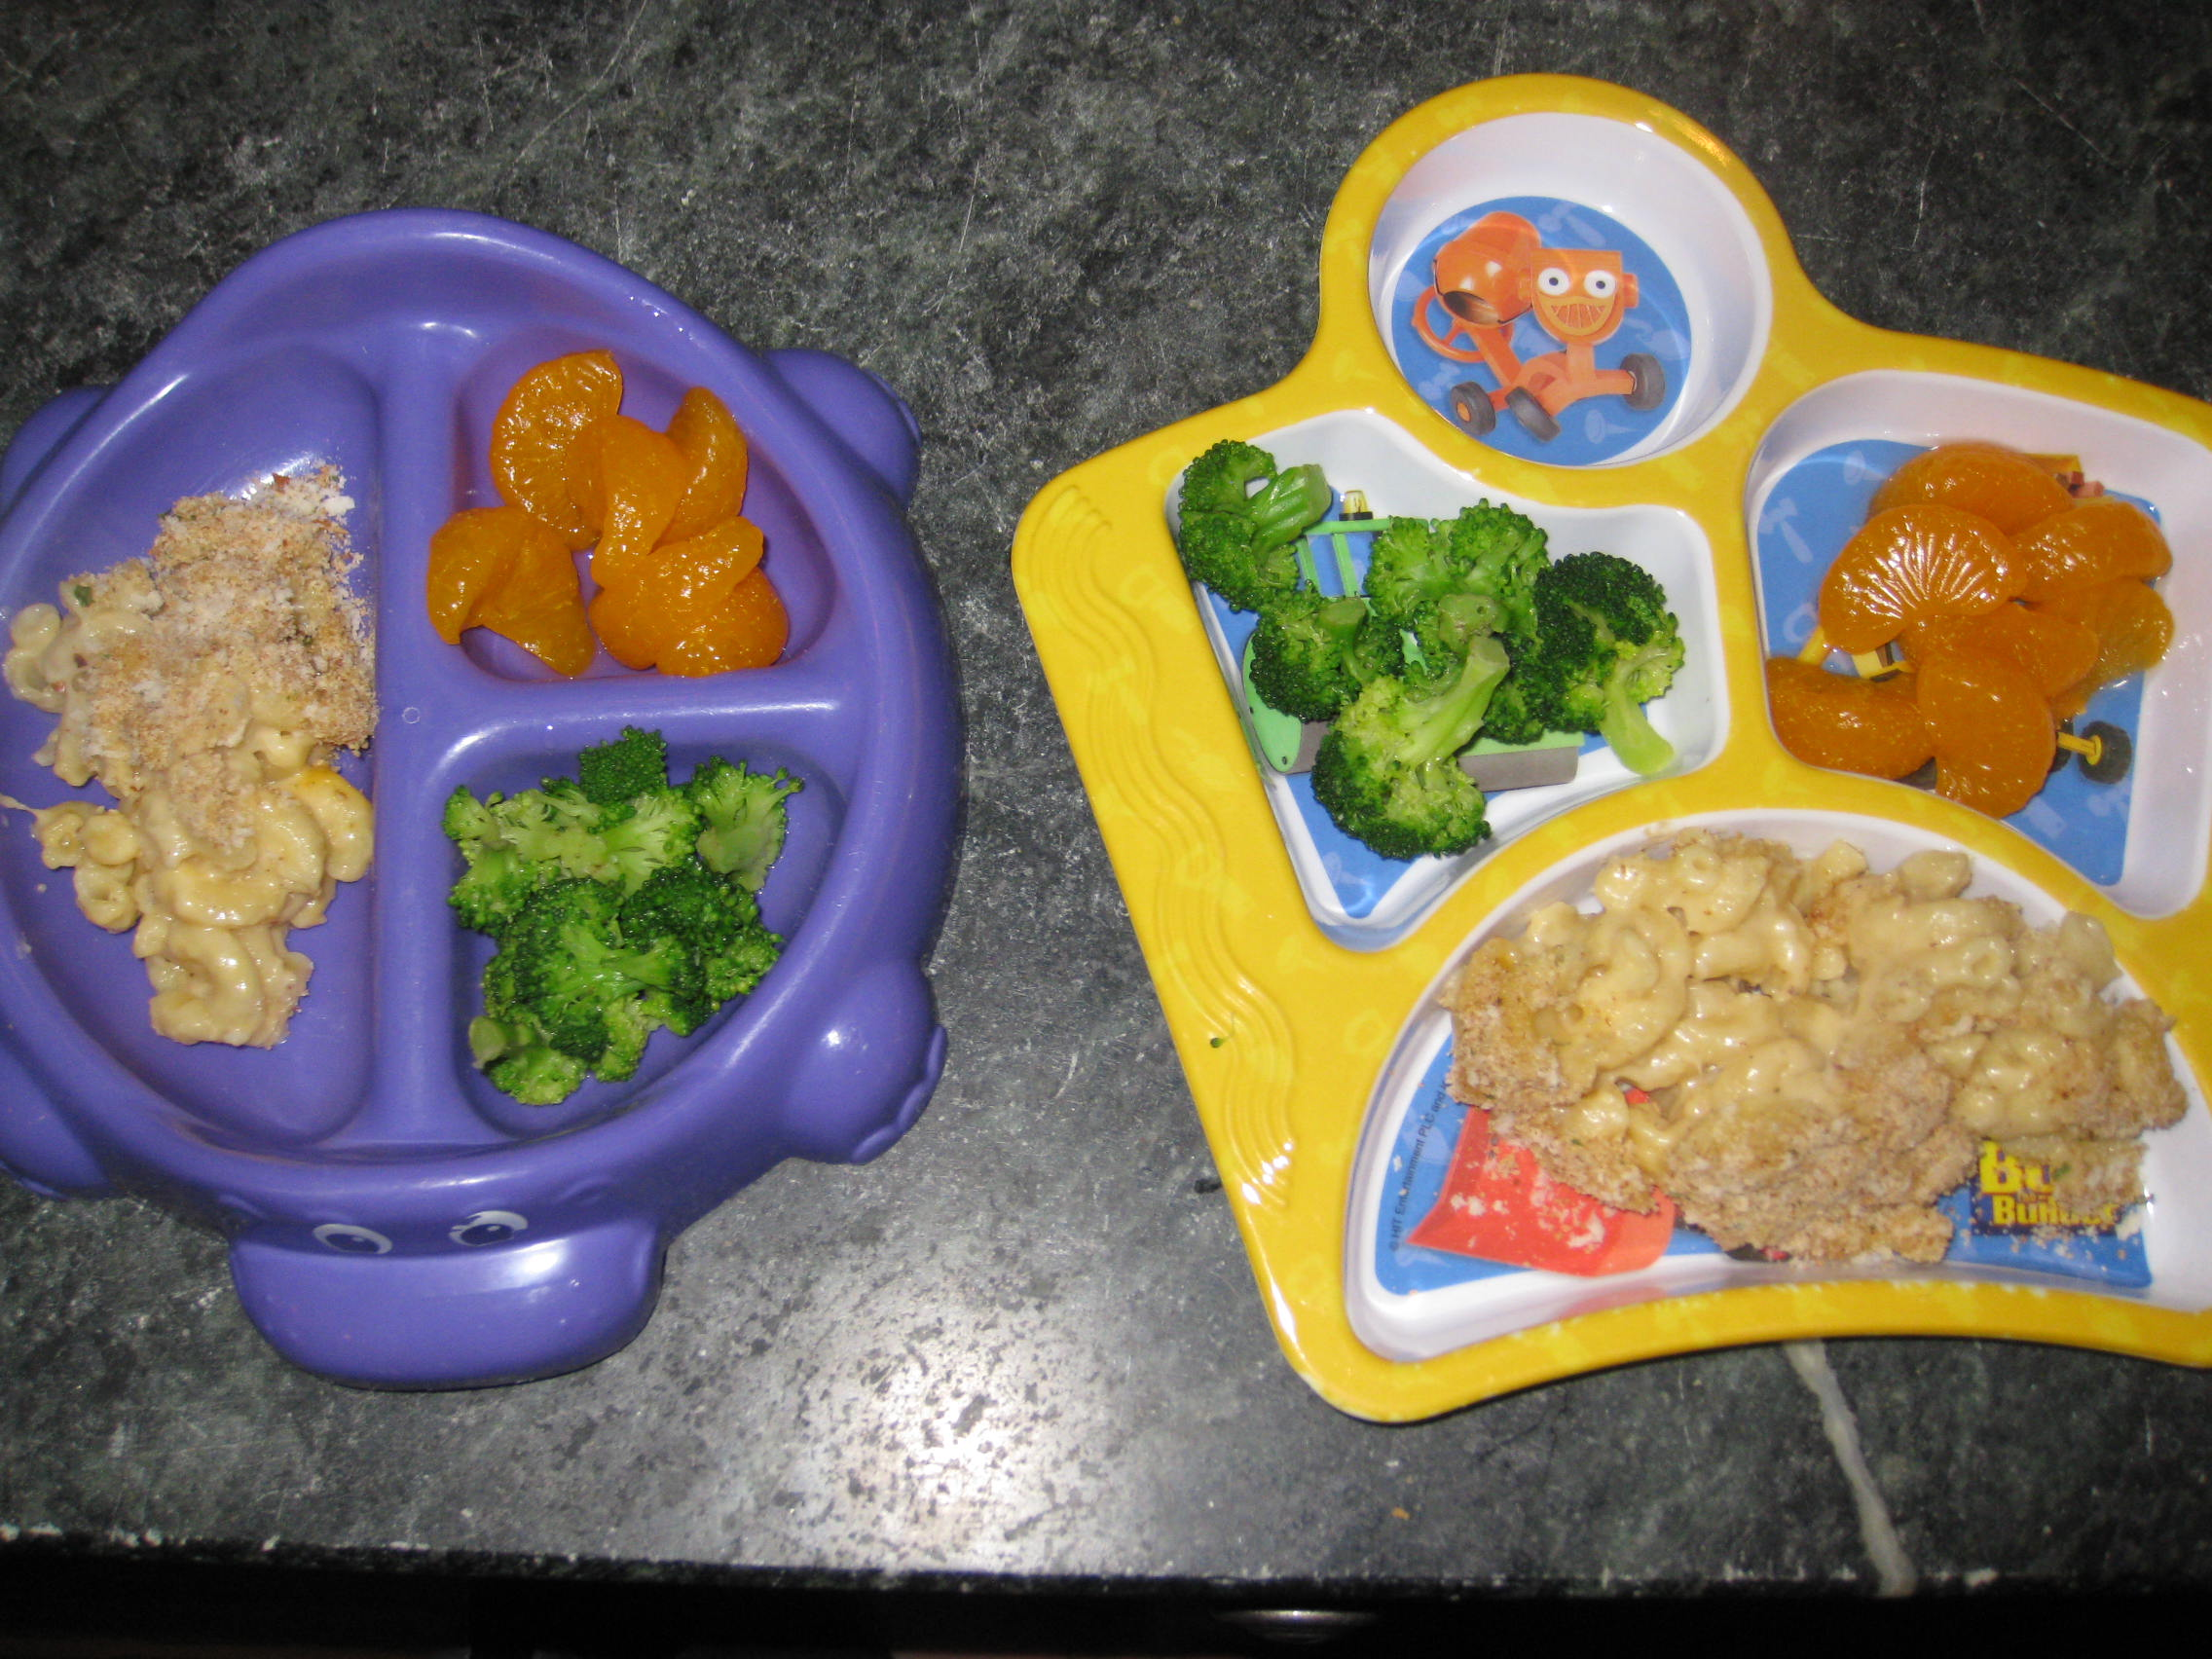 Mealtime With Little Kids: Before & After Plates